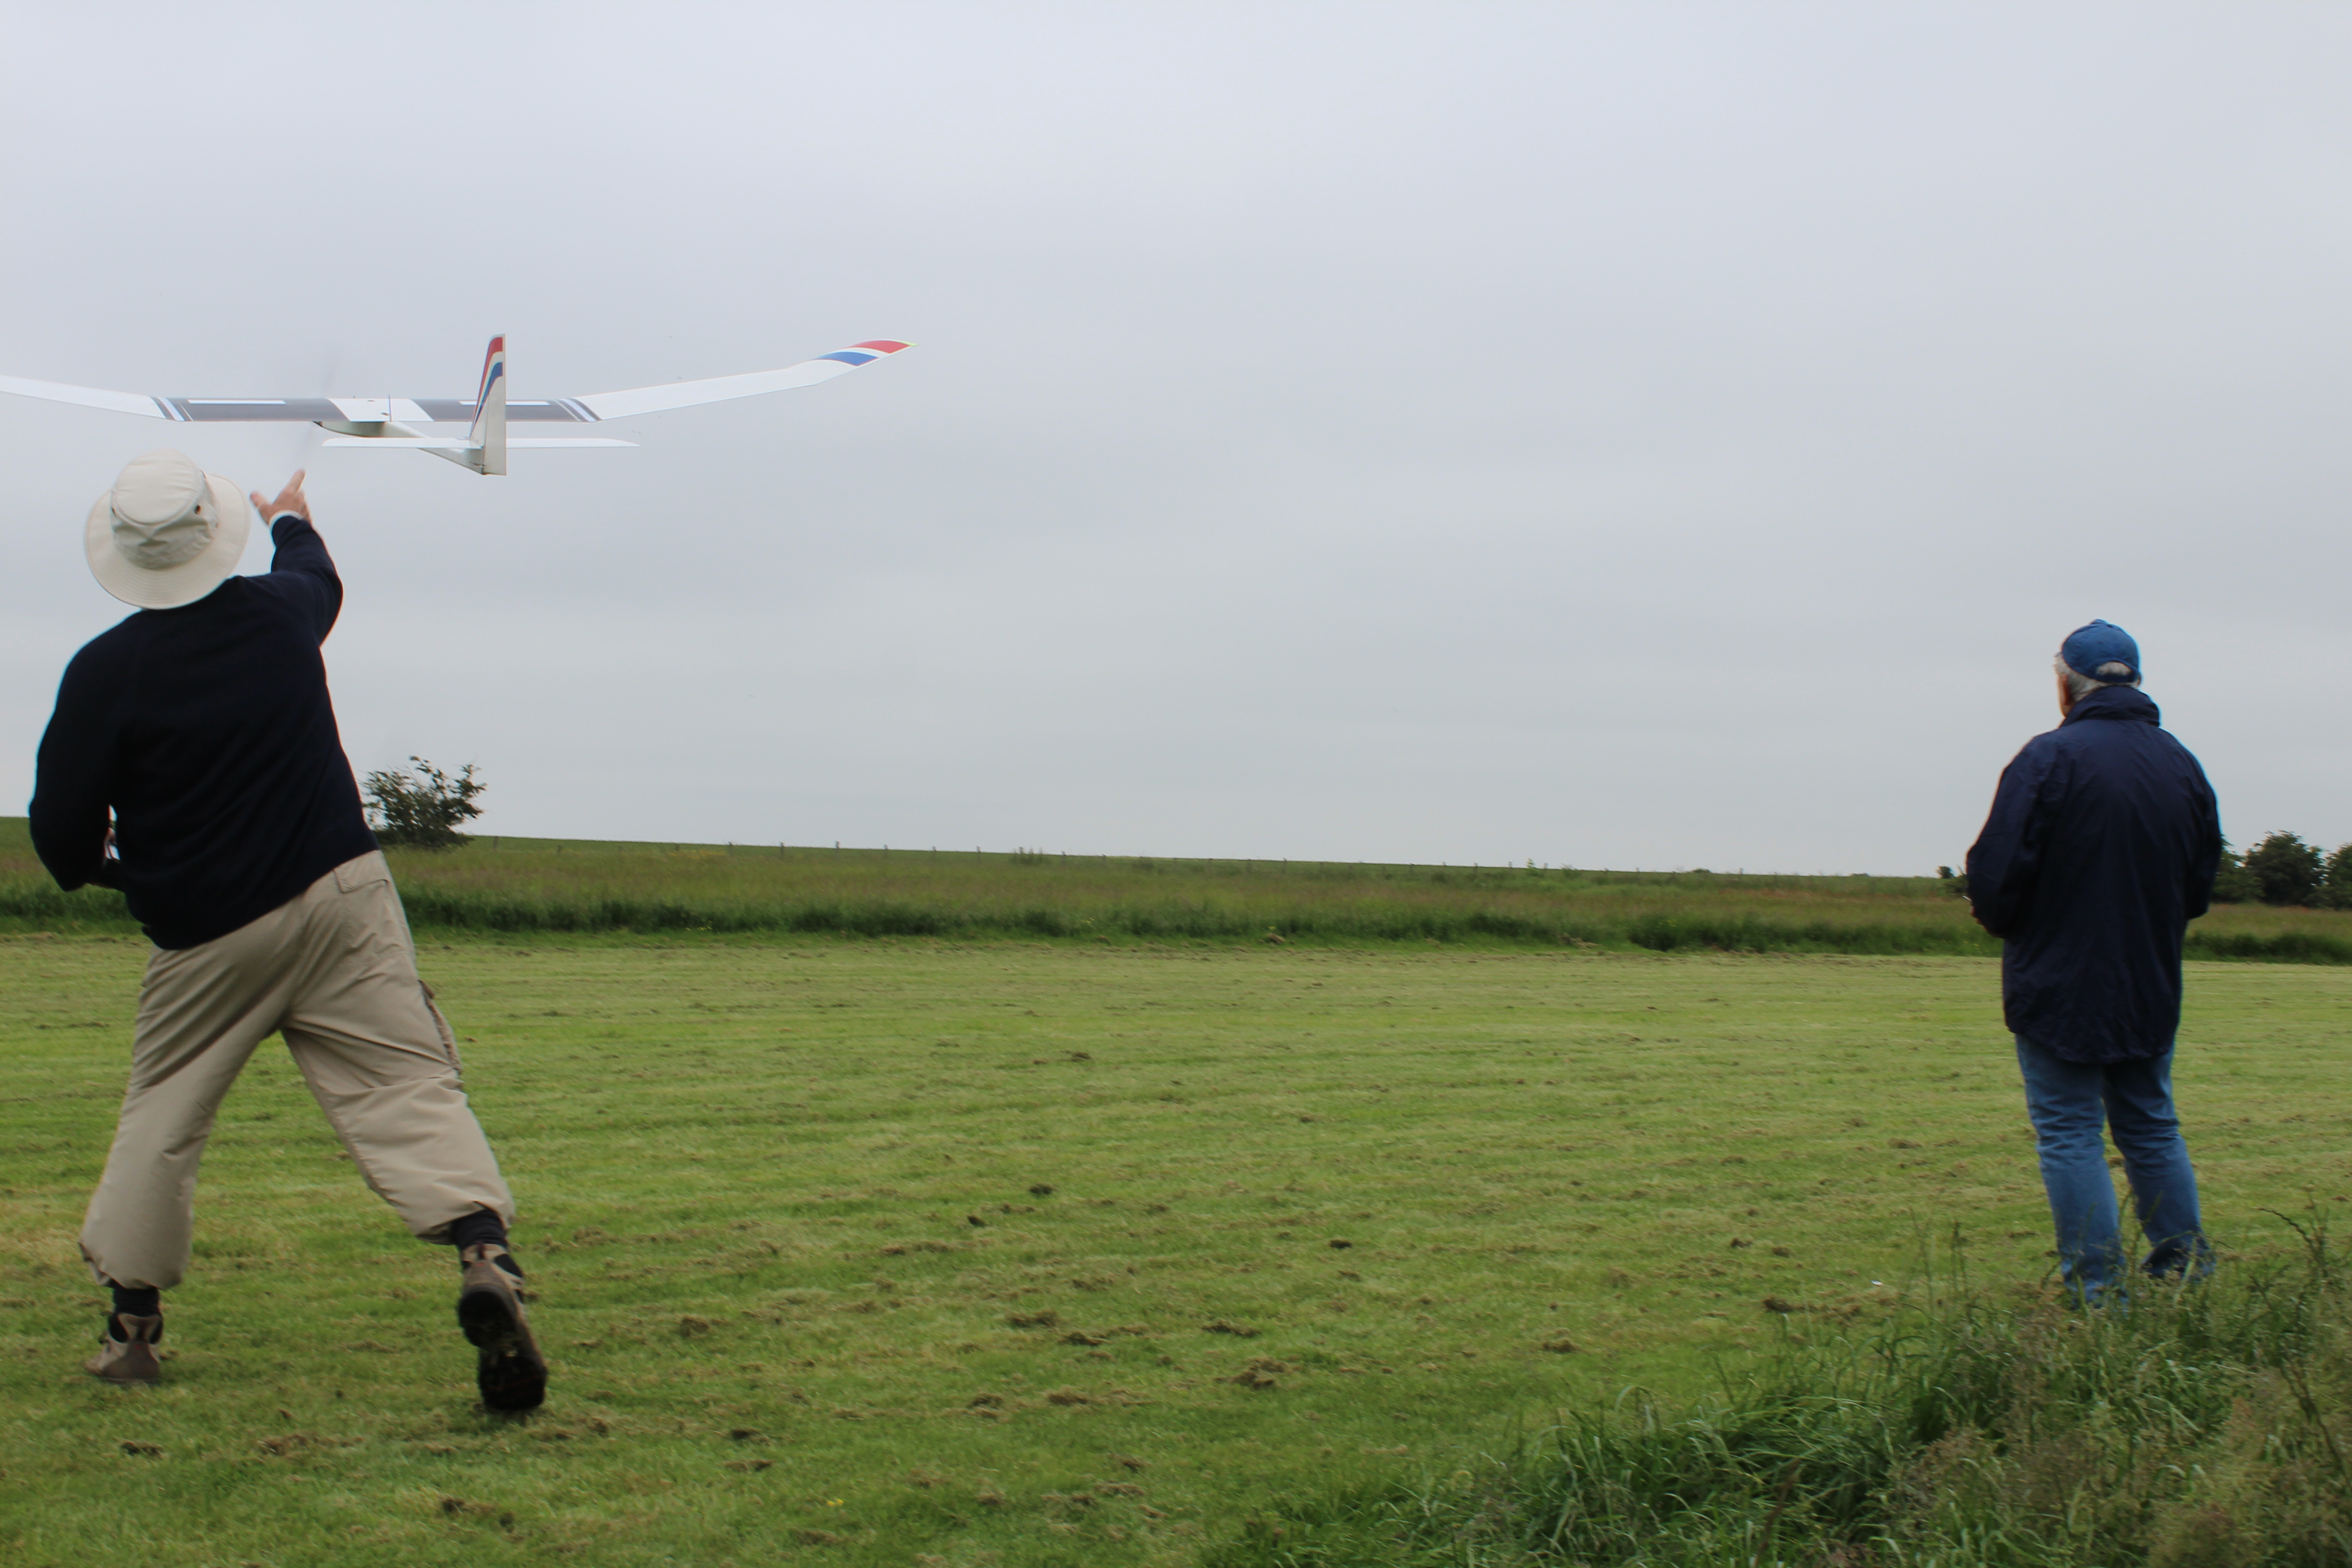 Alan launched his Eliminator